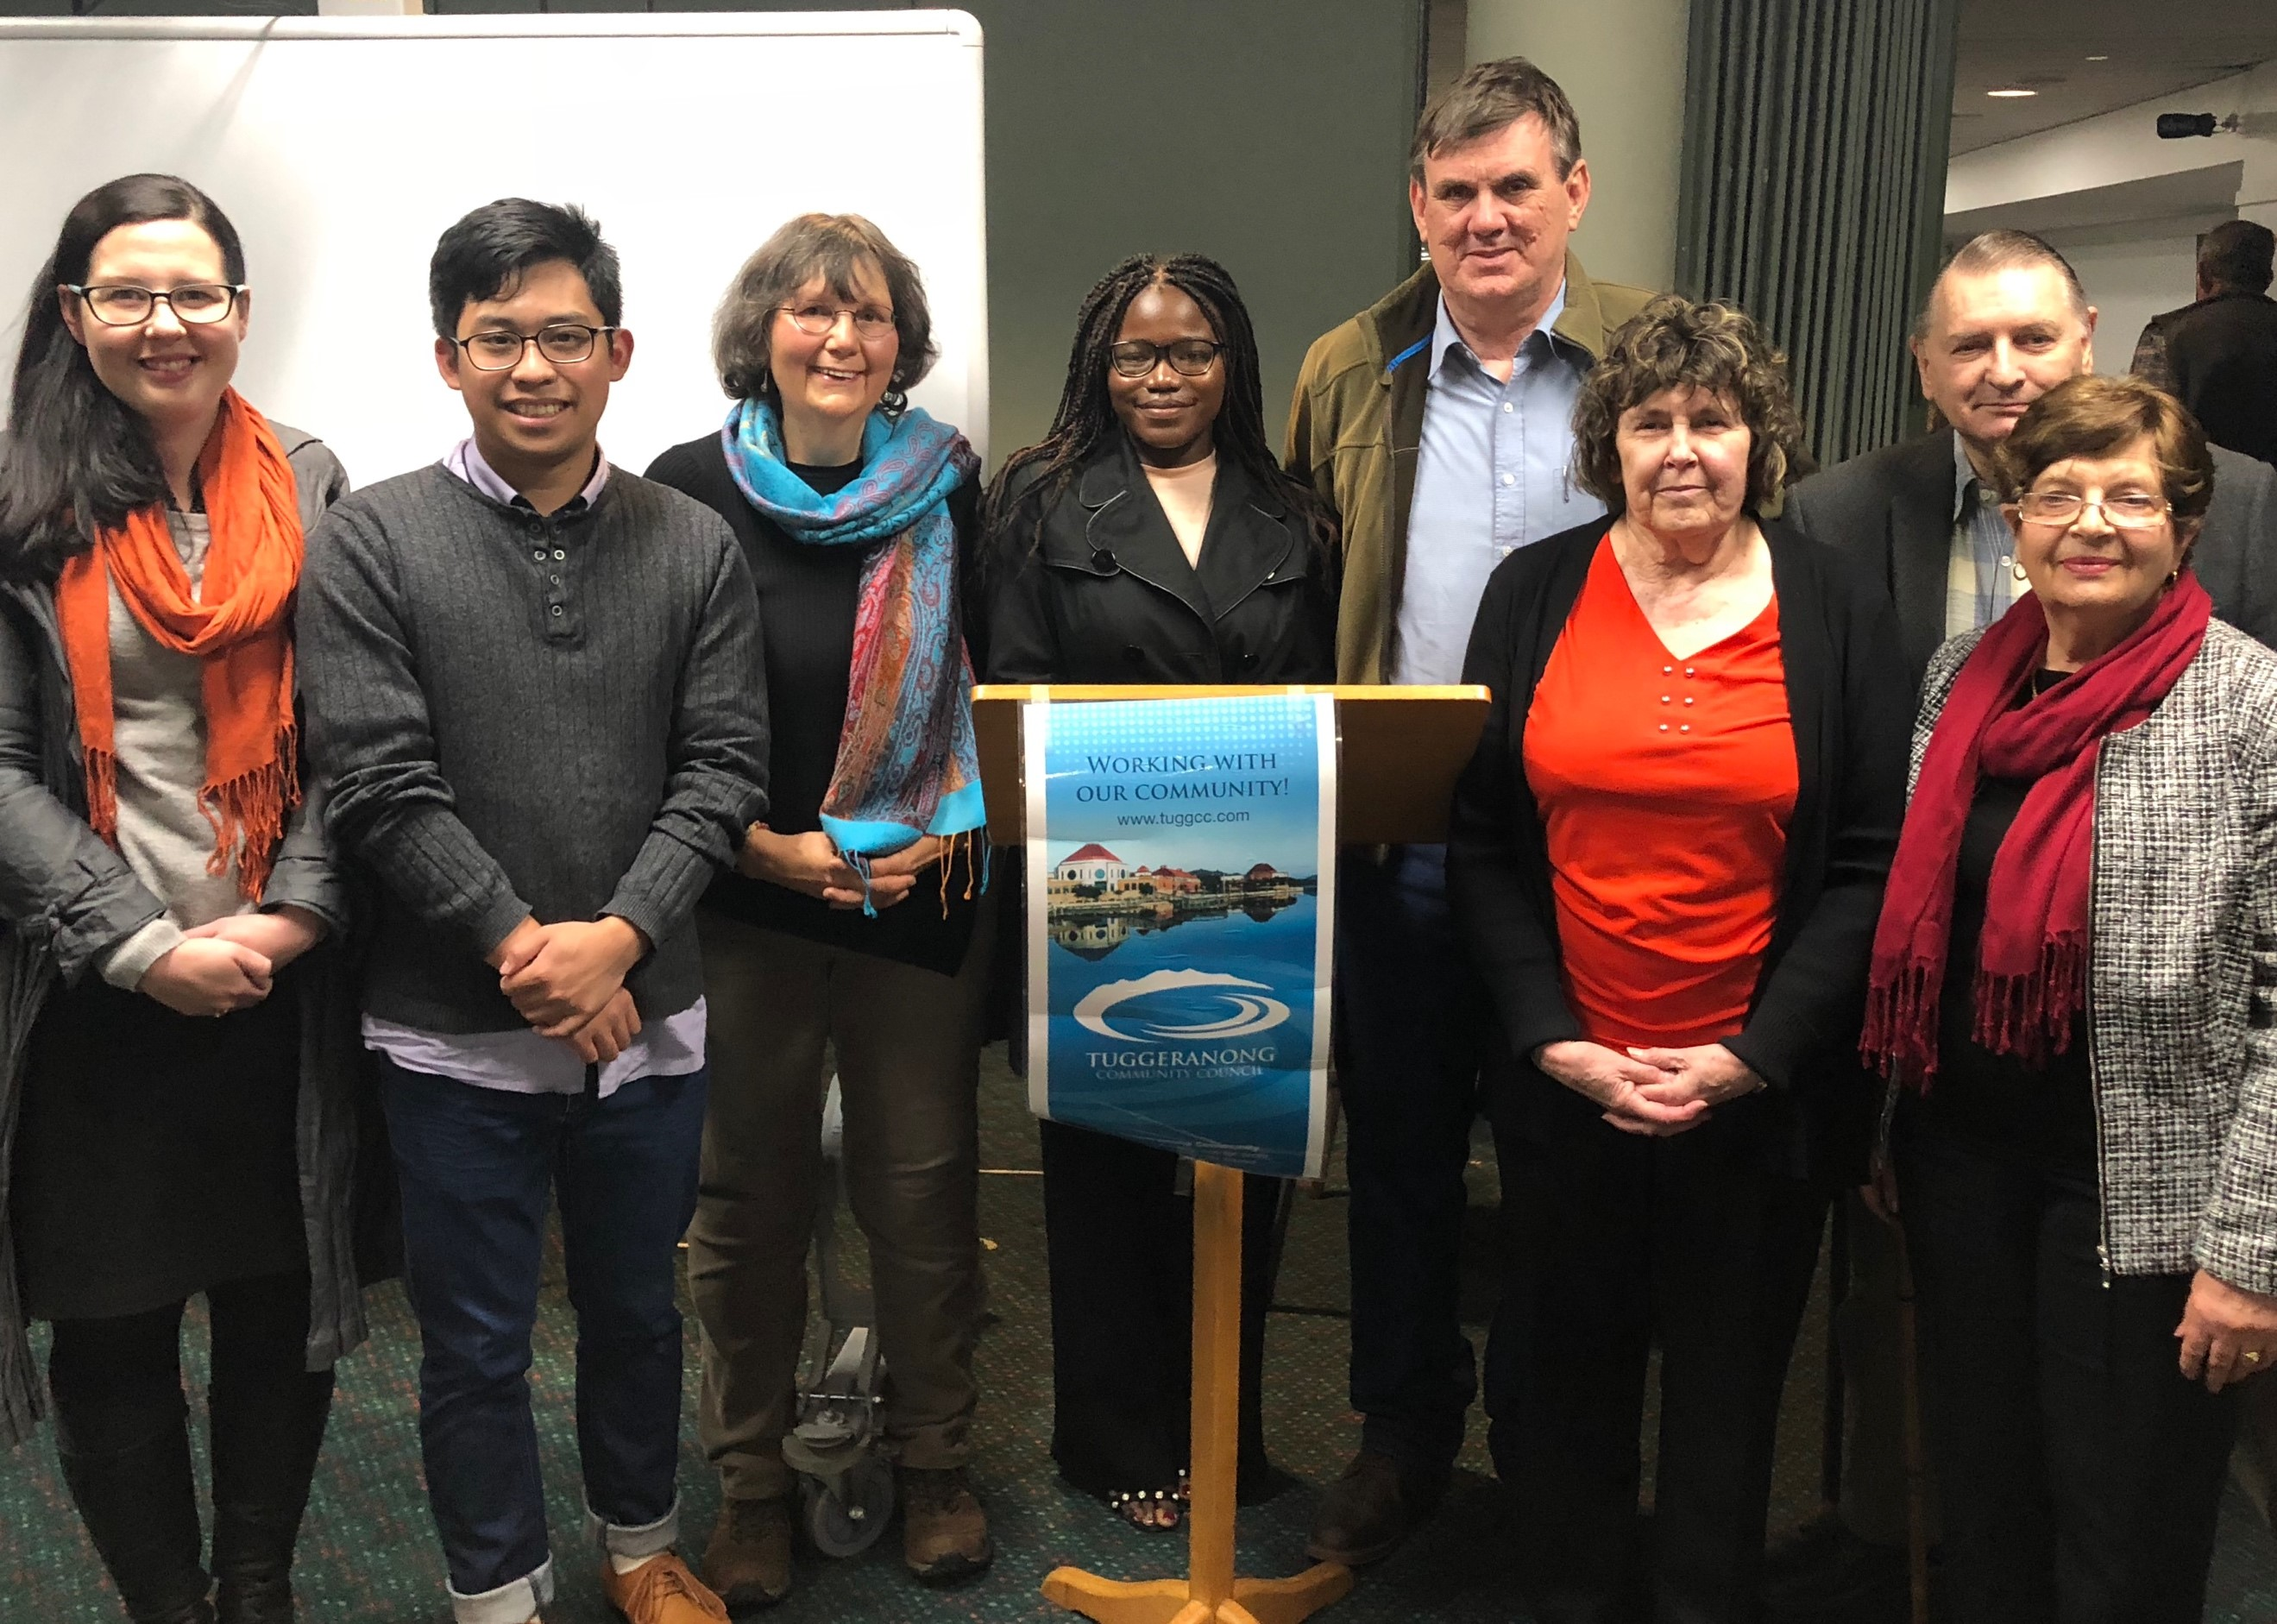 Tuggeranong Community Council Committee